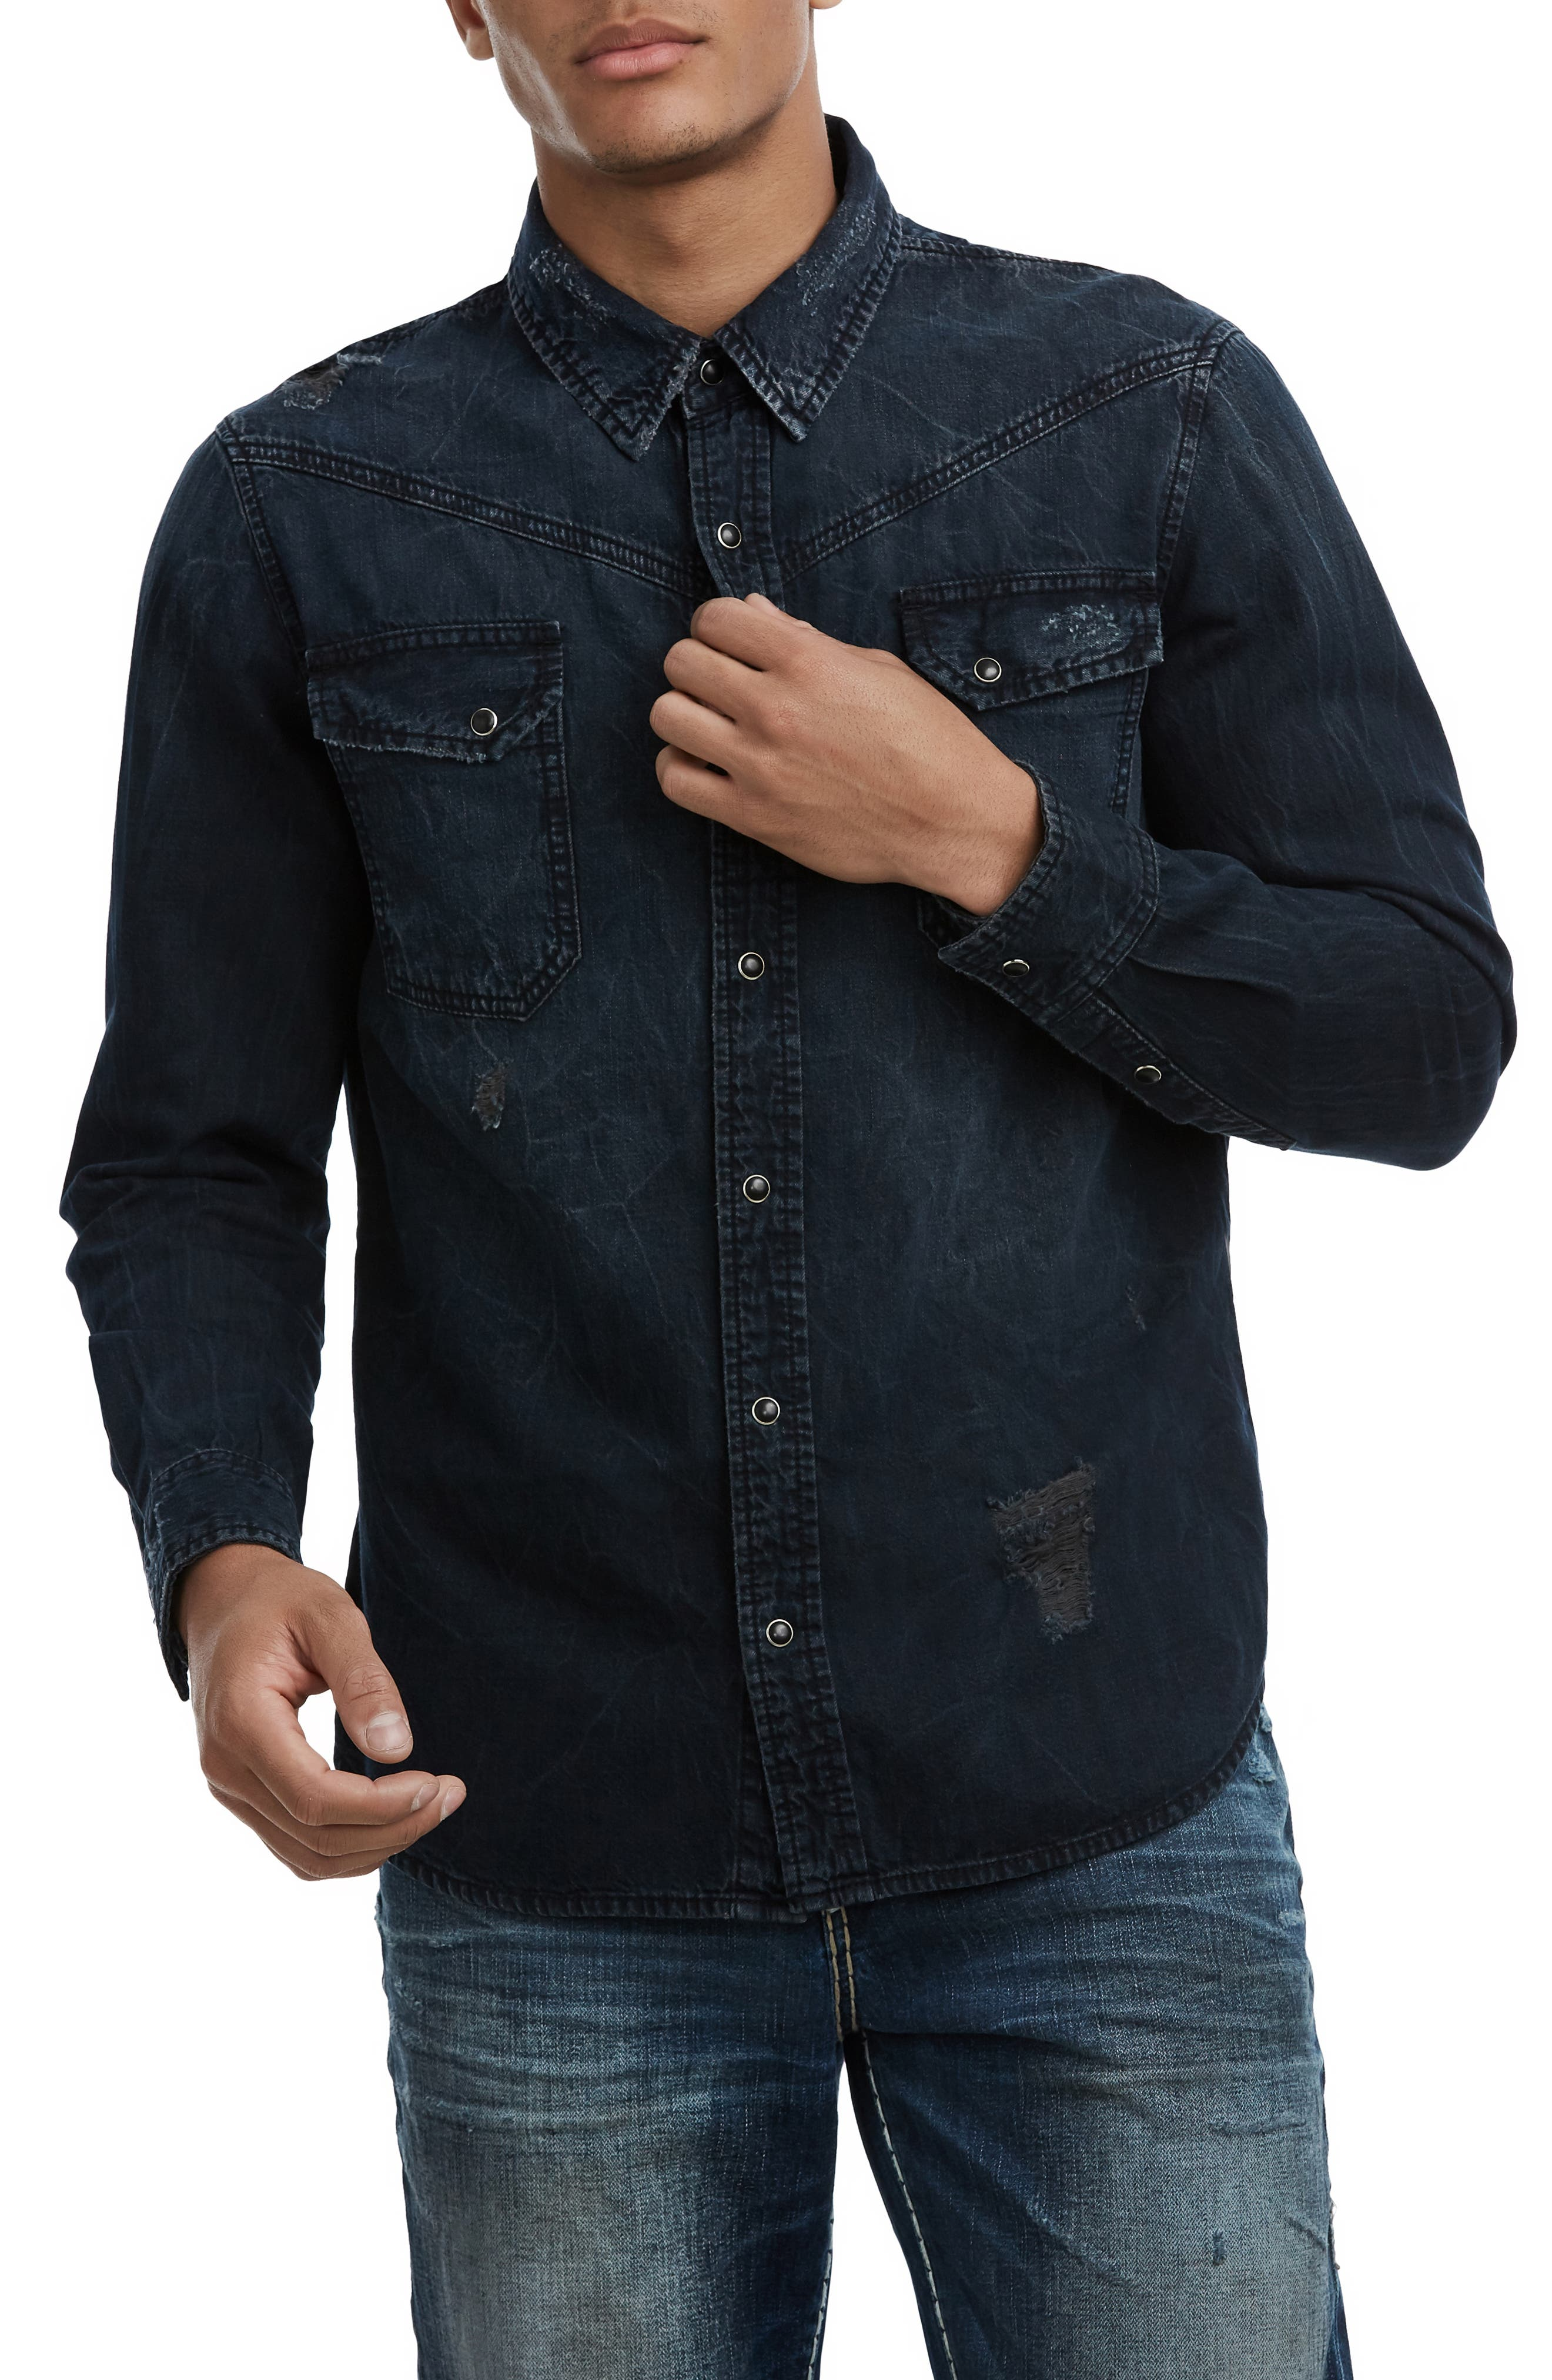 Carter Distressed Denim Shirt,                         Main,                         color, INDIGO RIVAL